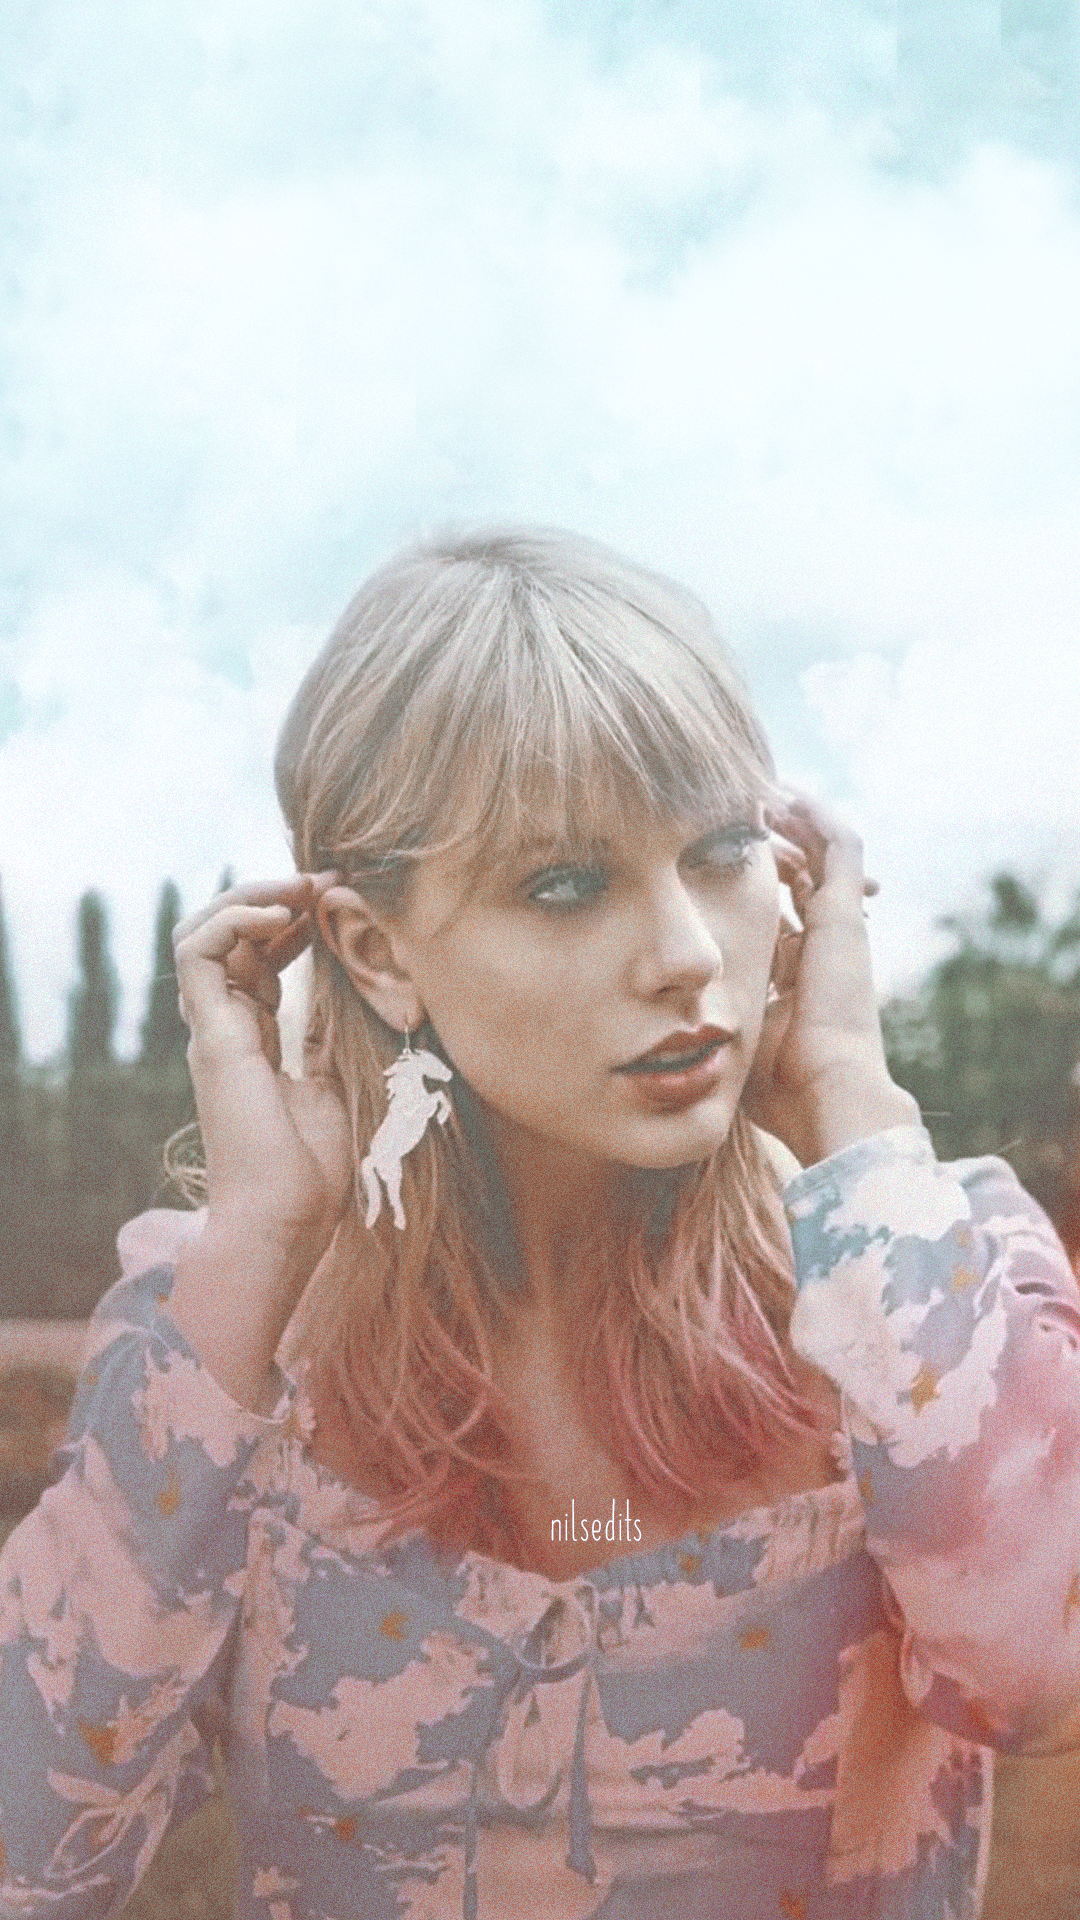 Aesthteic Taylor Swift Wallpaper Mobile Taylor Swift Pictures Taylor Swift Wallpaper Taylor Swift Concert